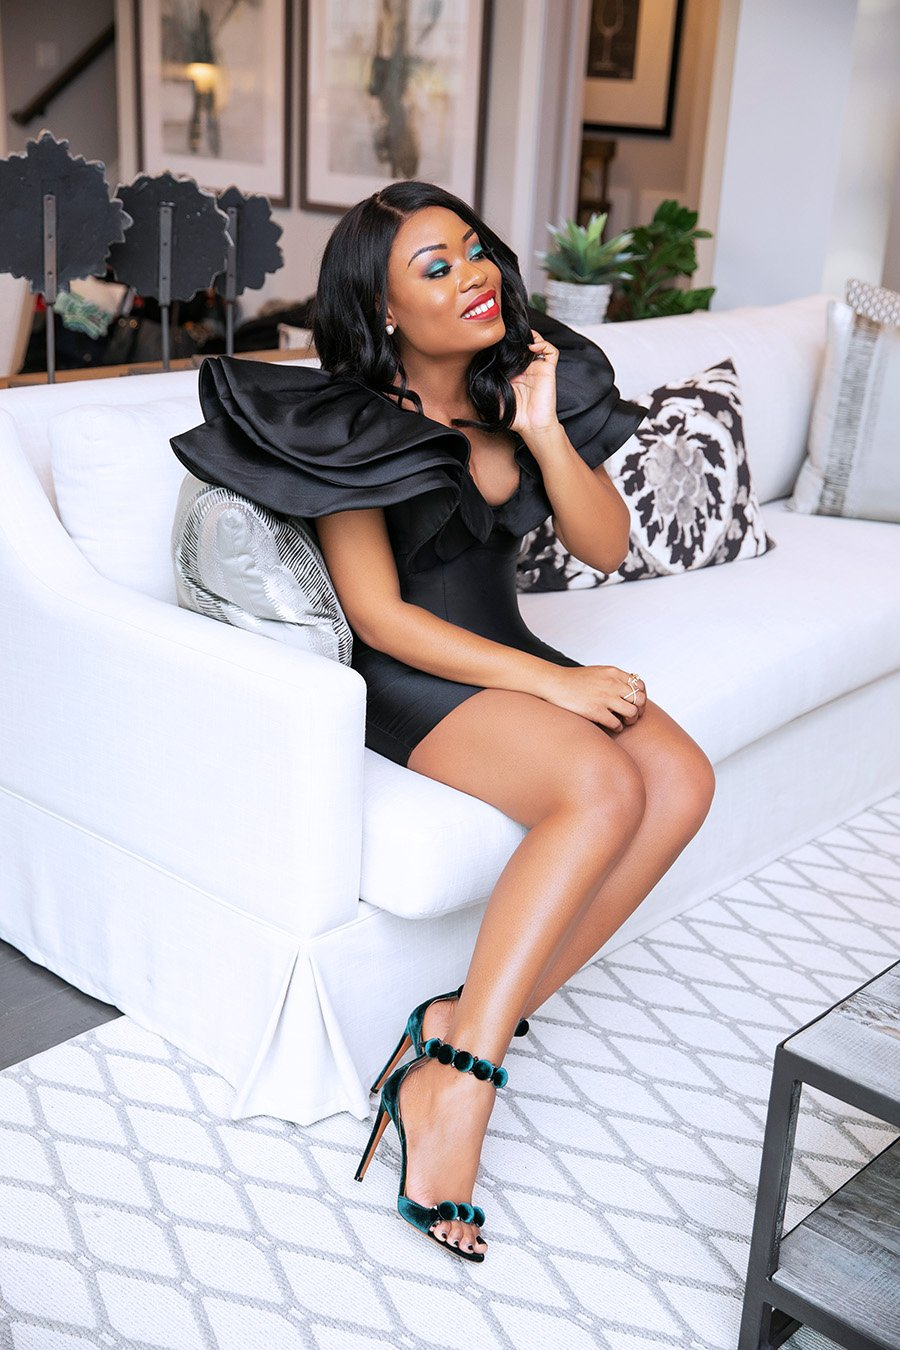 stella-adewunmi-of-jadore-fashion-shares-ten-date-ideas-and-what-to-wear